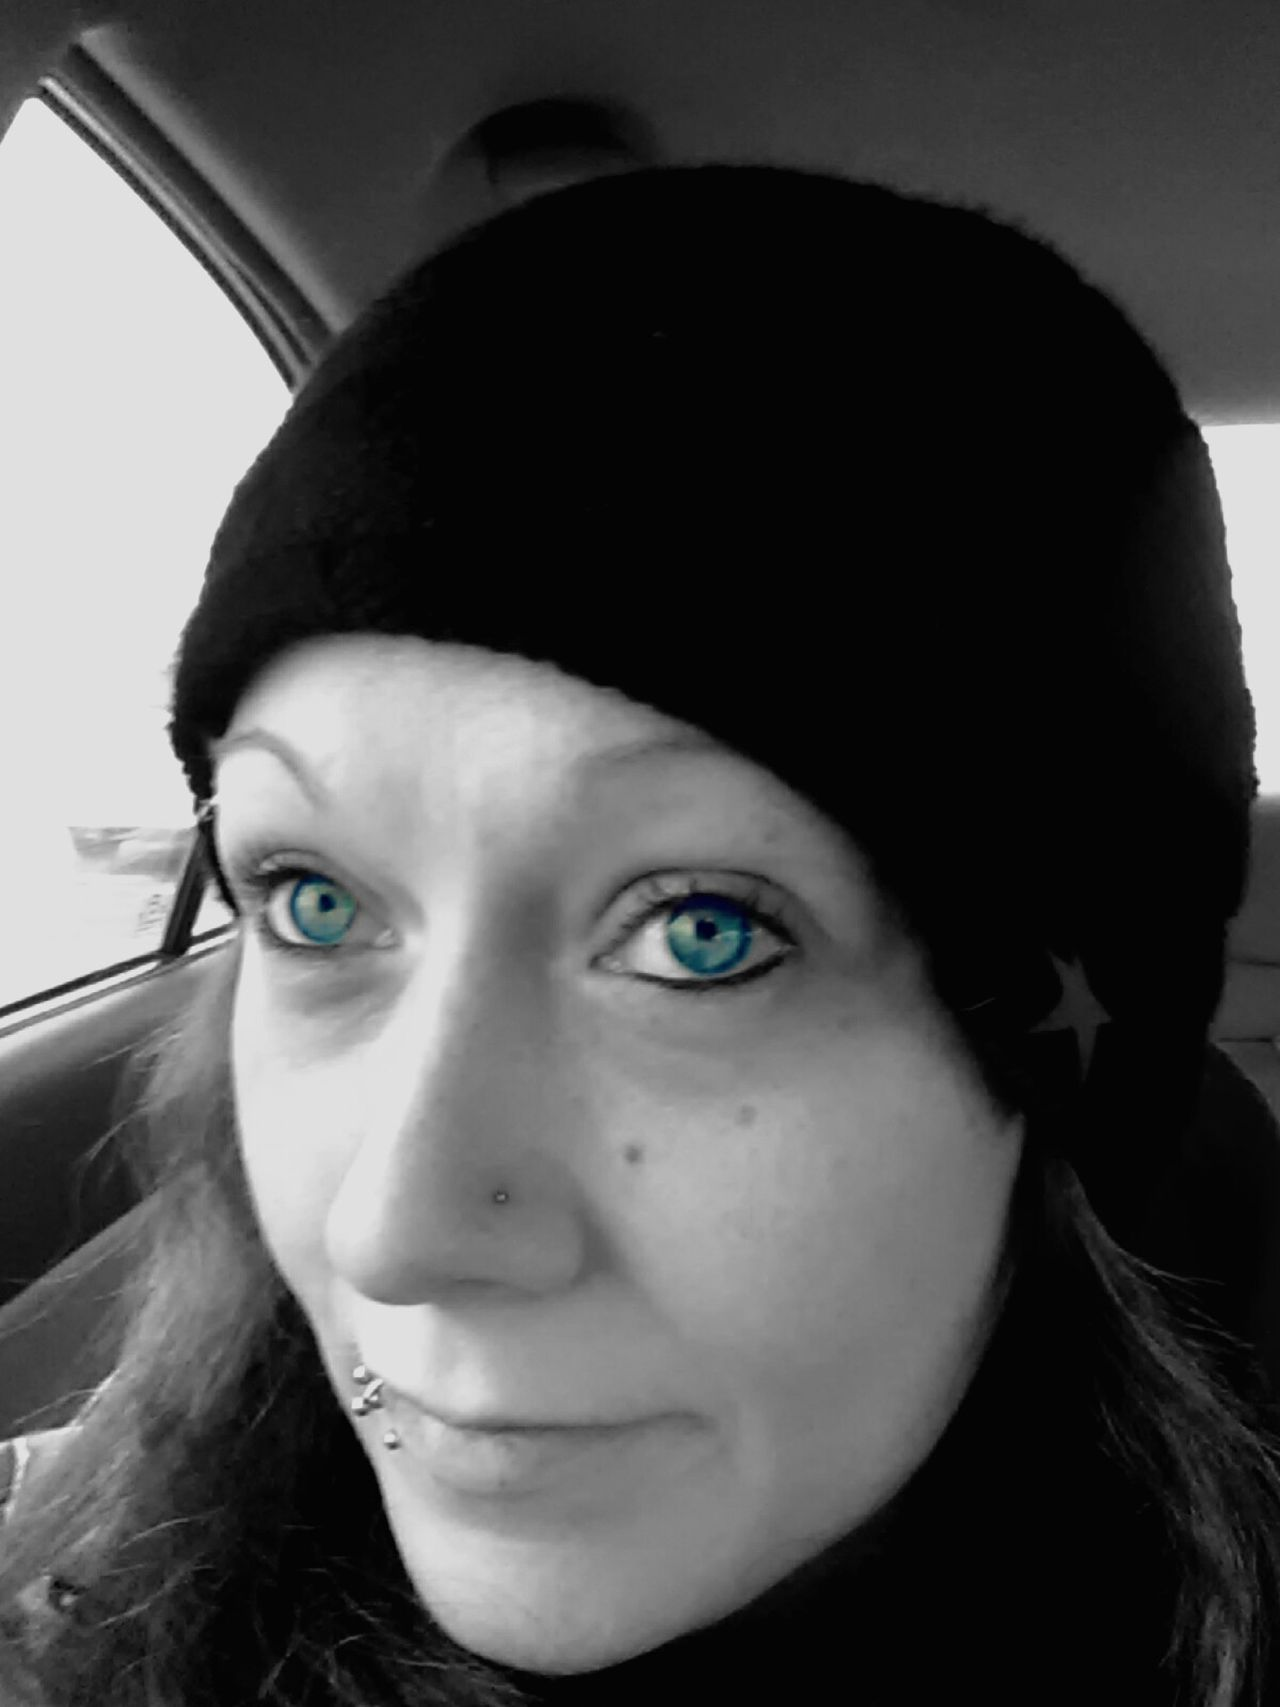 Looking At Camera Young Women Close-up Blue Eyes Those Eyes Tho Thats Me! Real People My Photography. ❤ Hello World ✌ Check This Out 😊 Real People, Real Lives Cold Outside ❄⛄  2016♡ Crazy Blue Eyes Selfie✌ Beauty Real Photography Black & White Color Splash Blue Eyes 💙 Portrait Young Adult Day Michigan Up North Michiganliving